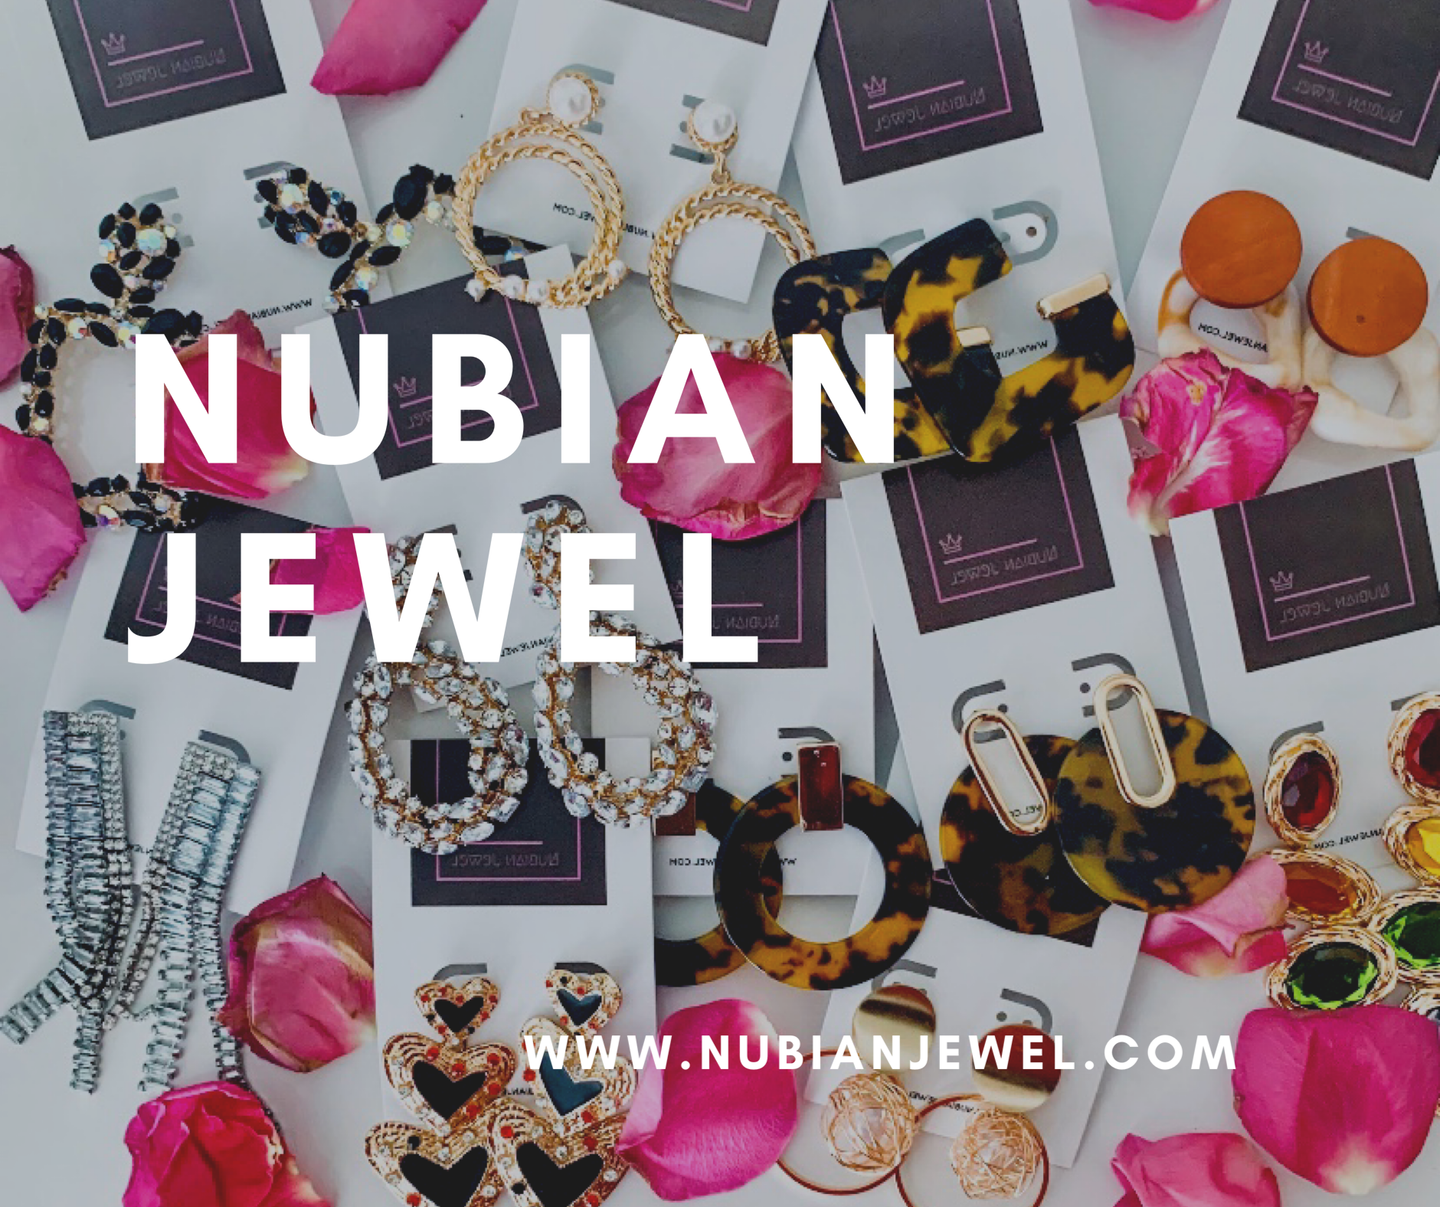 Nubian Jewel Gift Card